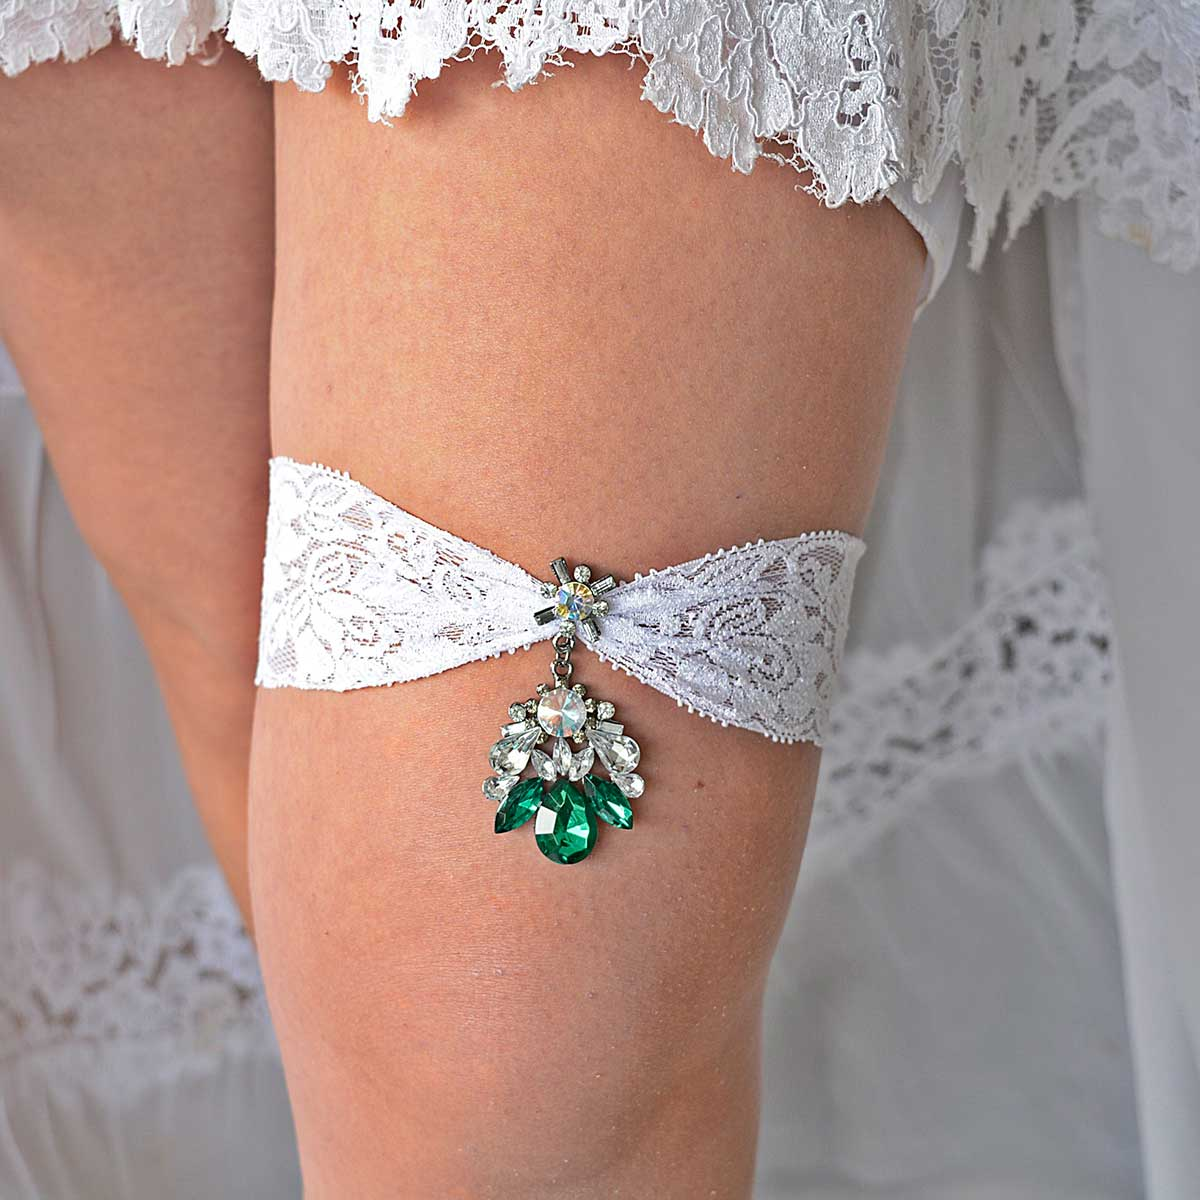 Big Green Rhinestone Bridal Garter Set With White Lace